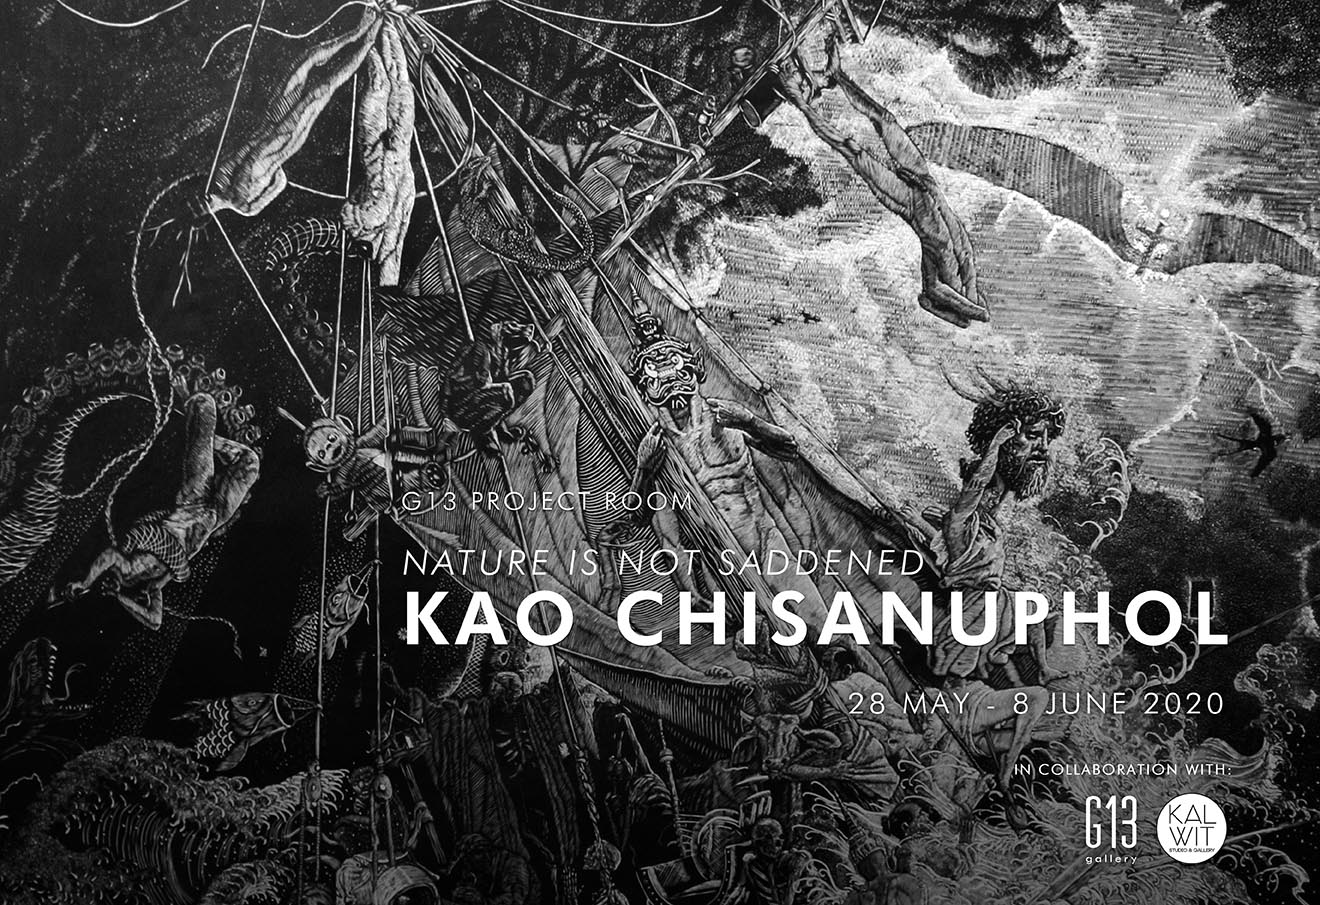 G13 Project Room: Nature is Not Saddened by Kao Chisanuphol